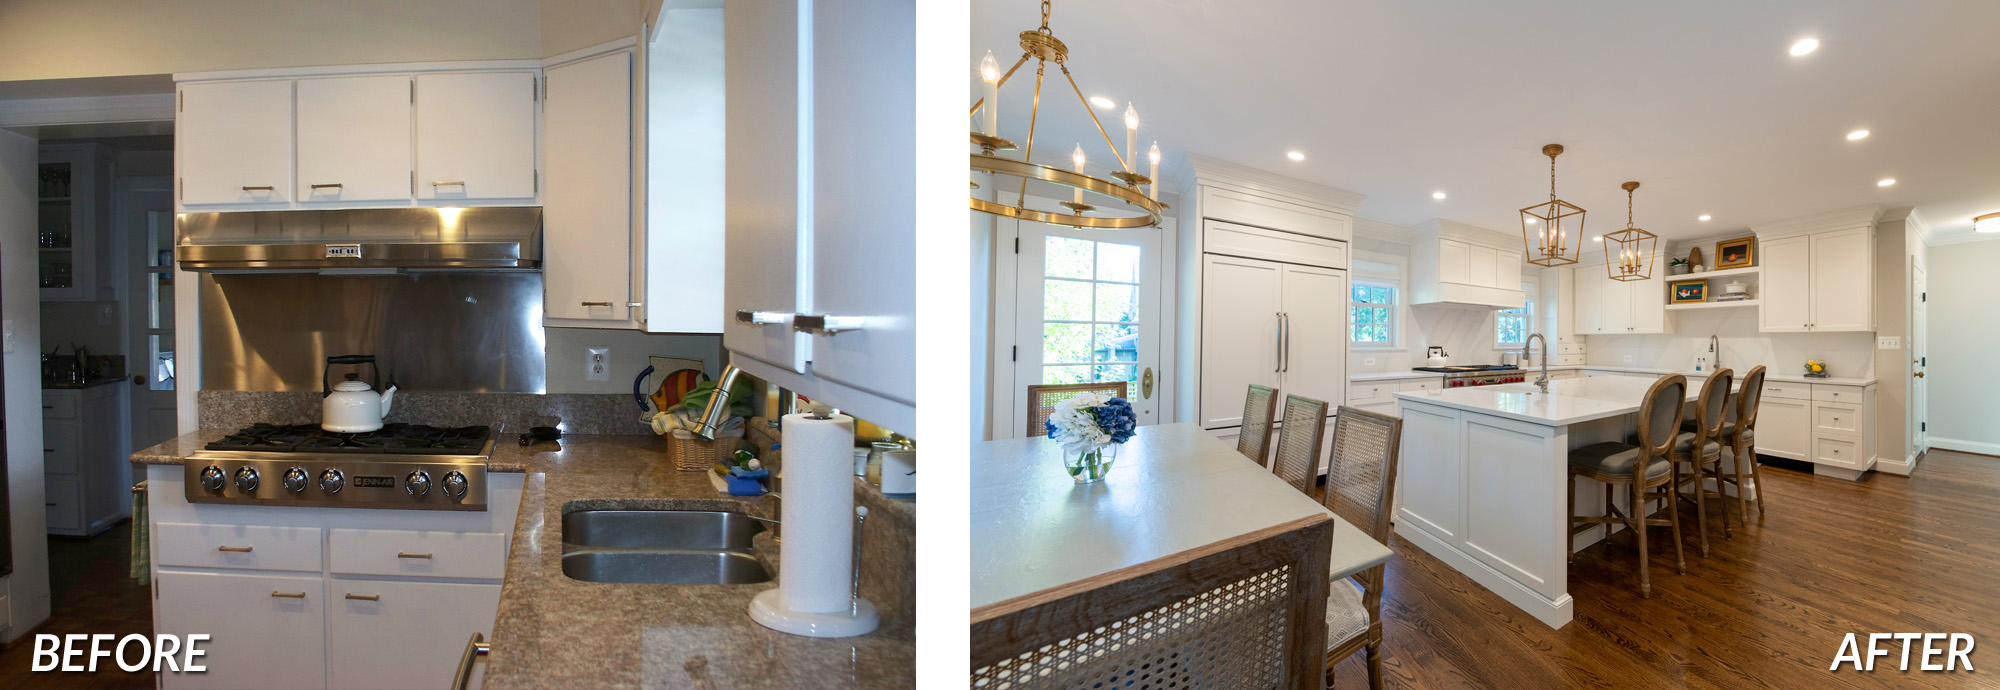 BOWA Design Design Build - Arlington Kitchen Renovation Before & After